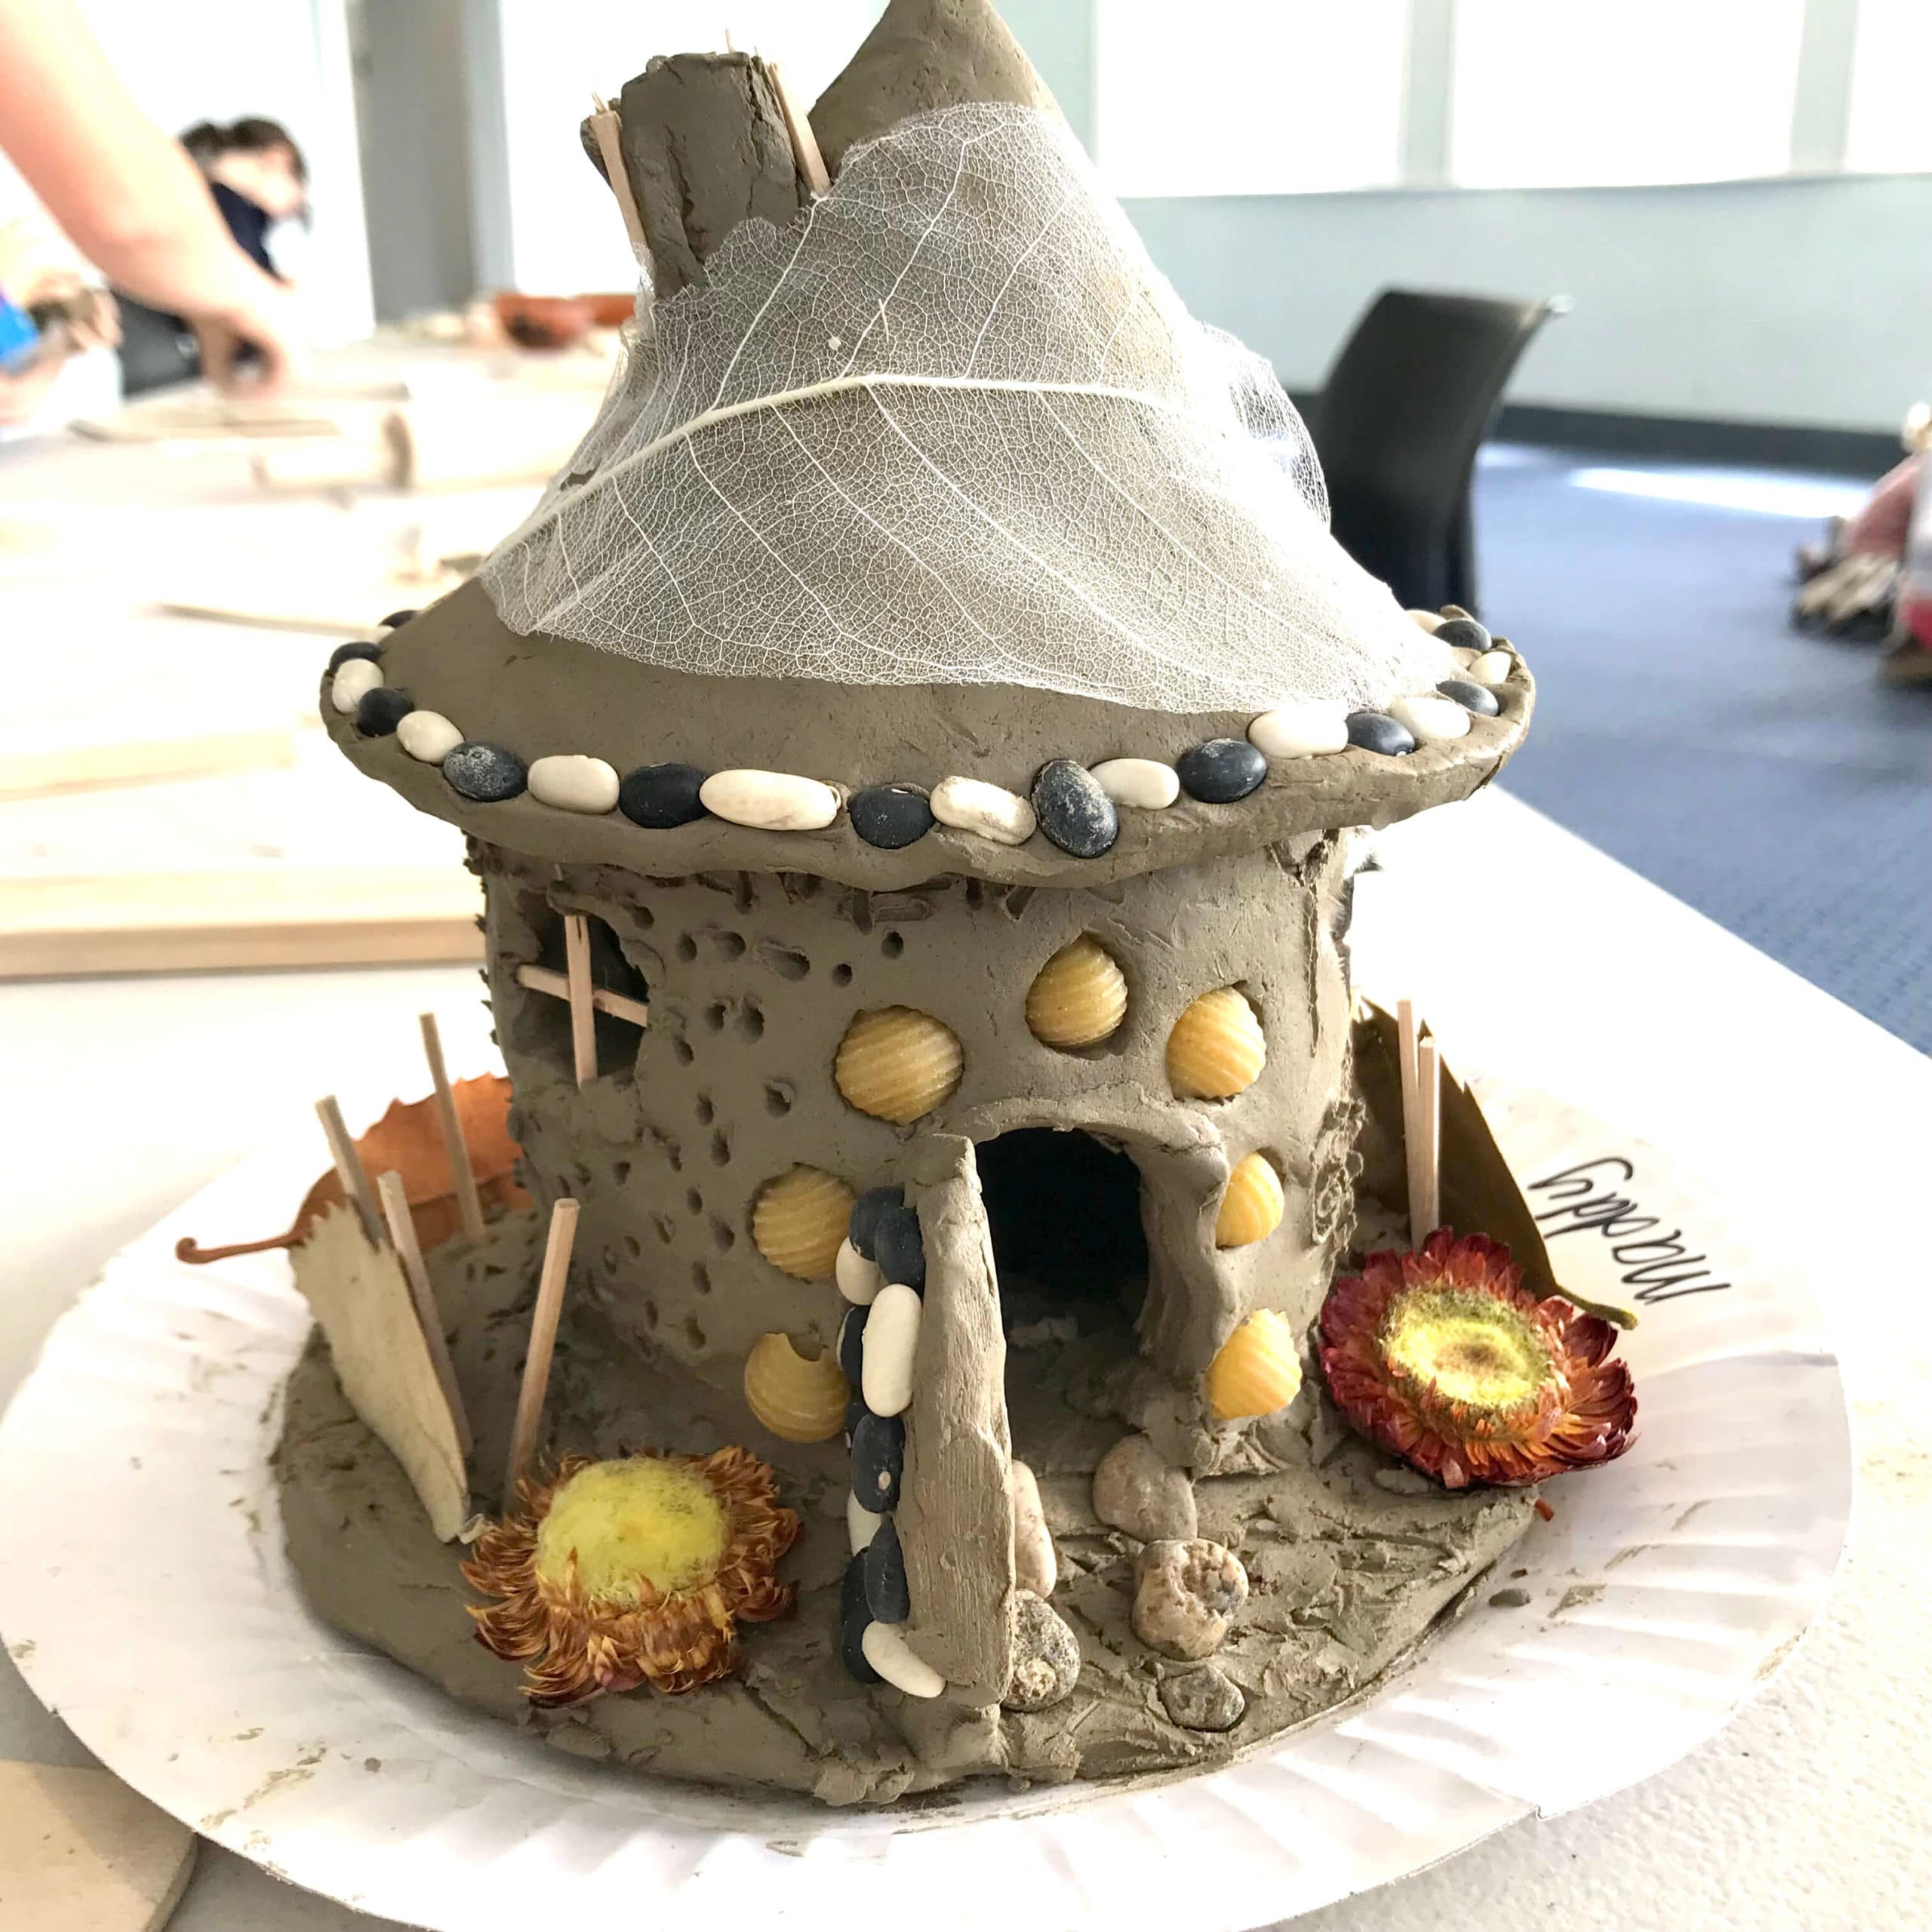 How to make a fairy house with clay, beans and found items